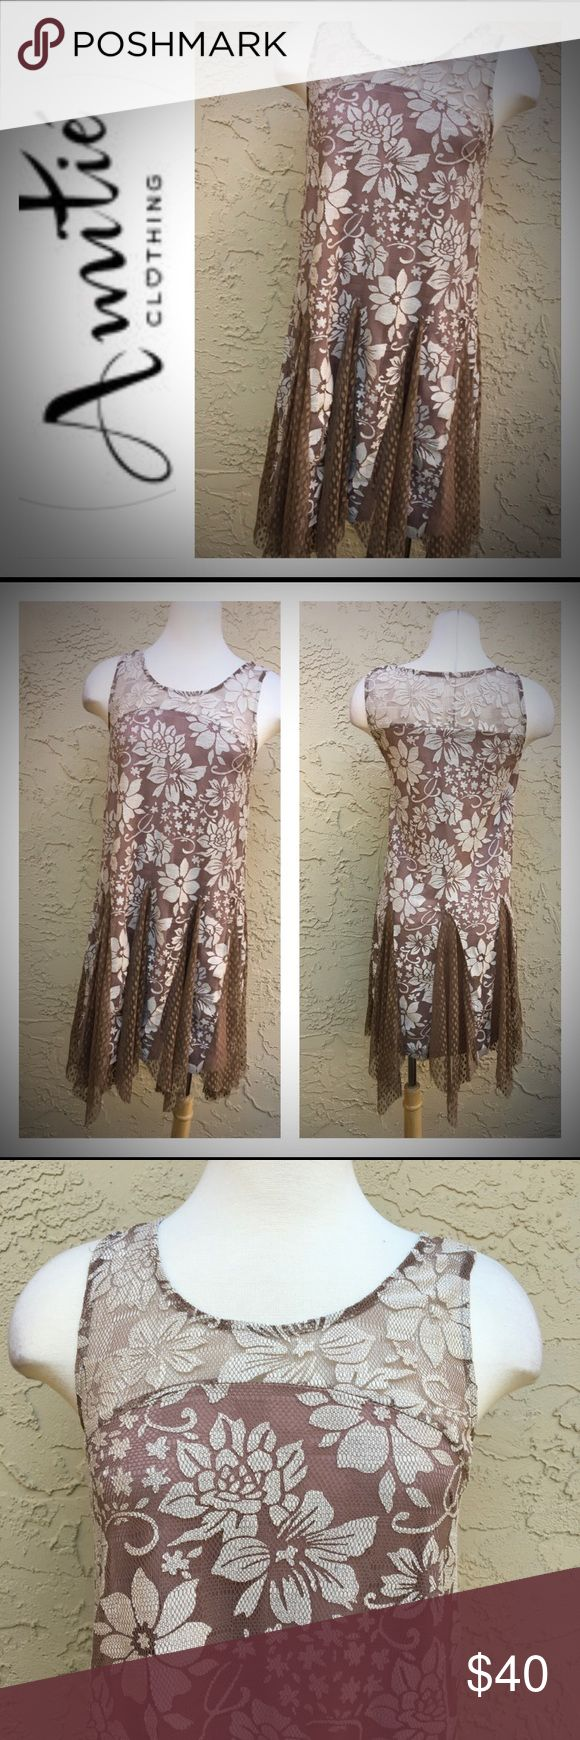 "New Brown/ Cream Lace Dress By Amitie New With Tag. Lace Floral Shark- Bite Hem. Great For Night Out, Valentine Date. Measure: 19.5"" Pit To Pit, Bust Size 36"" To 38"", 37"" Length. Amitie Dresses Midi"